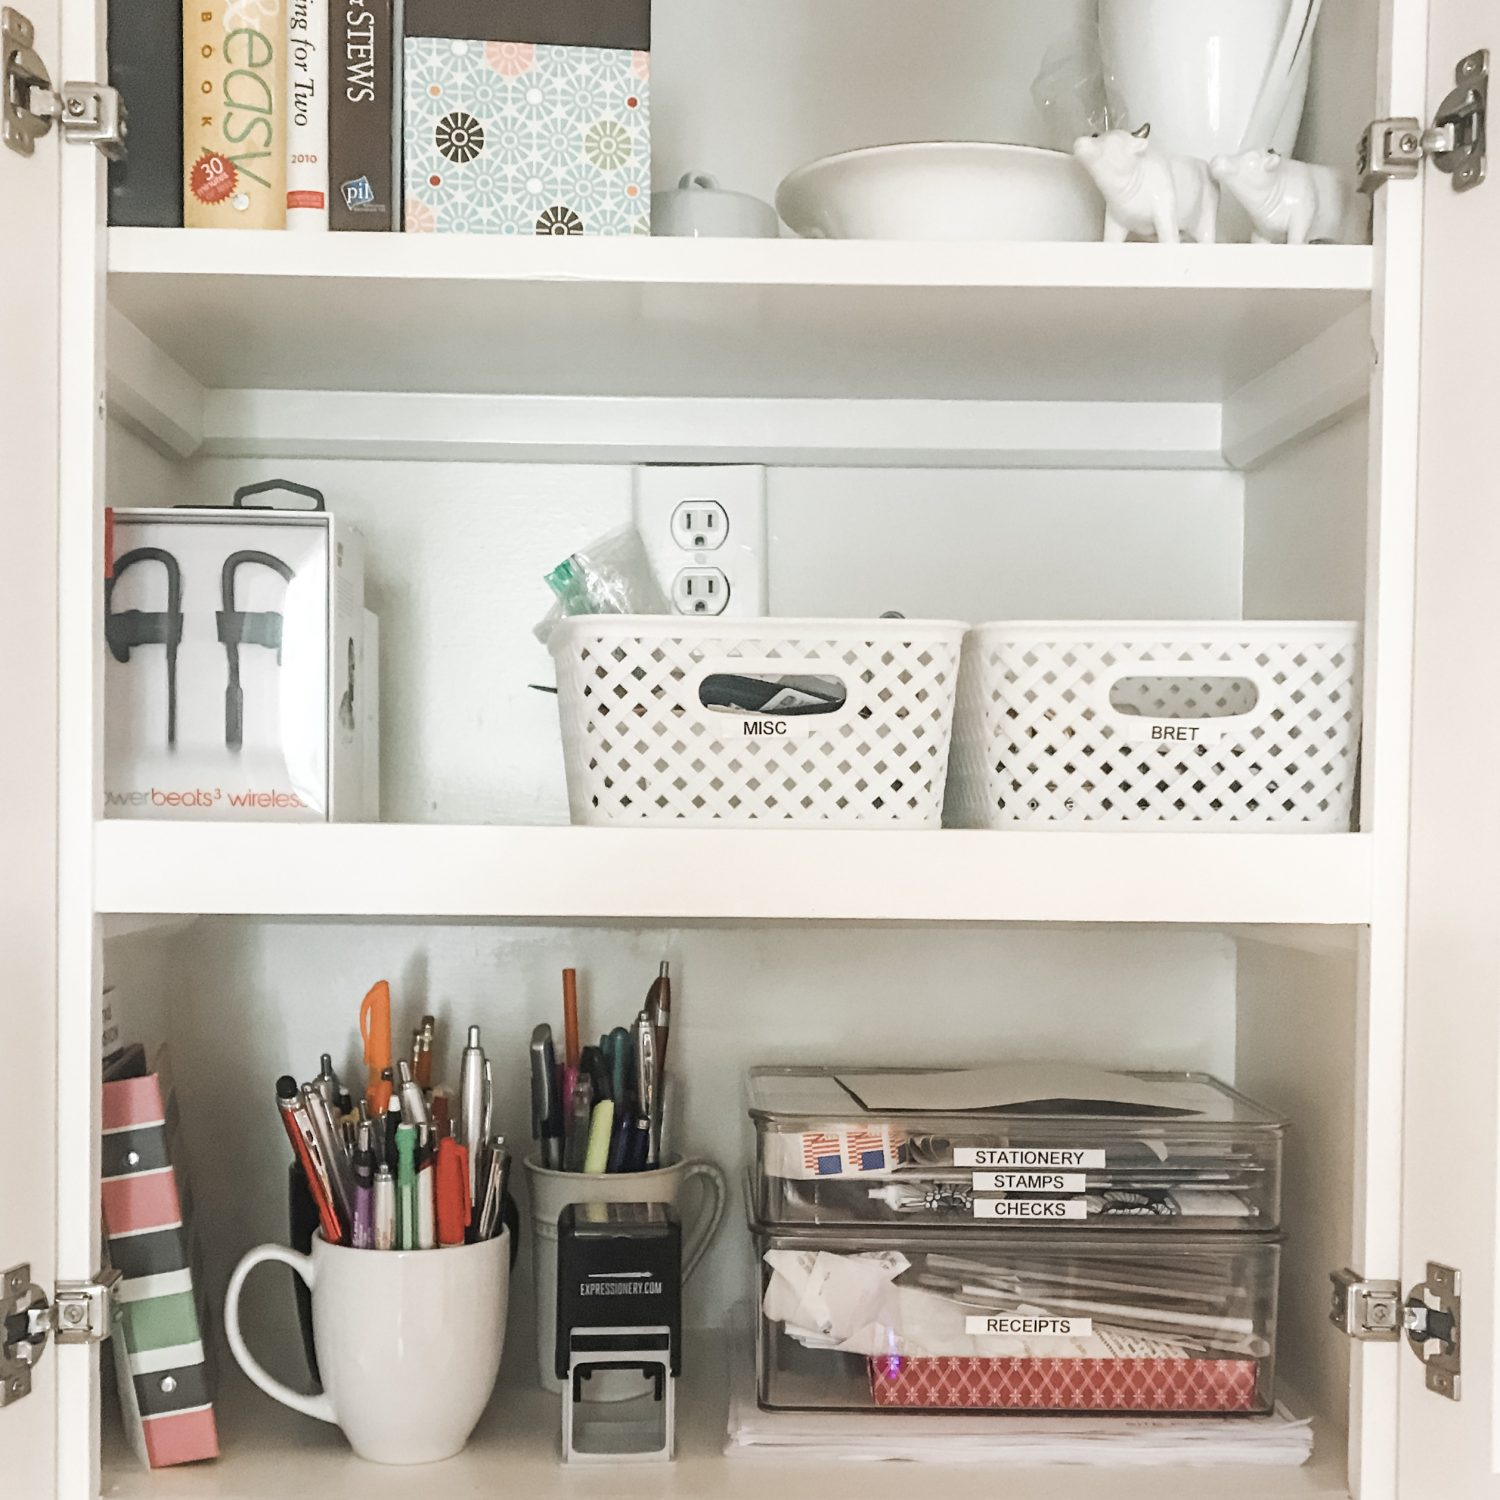 Kitchen Organization: Command Center Cabinet